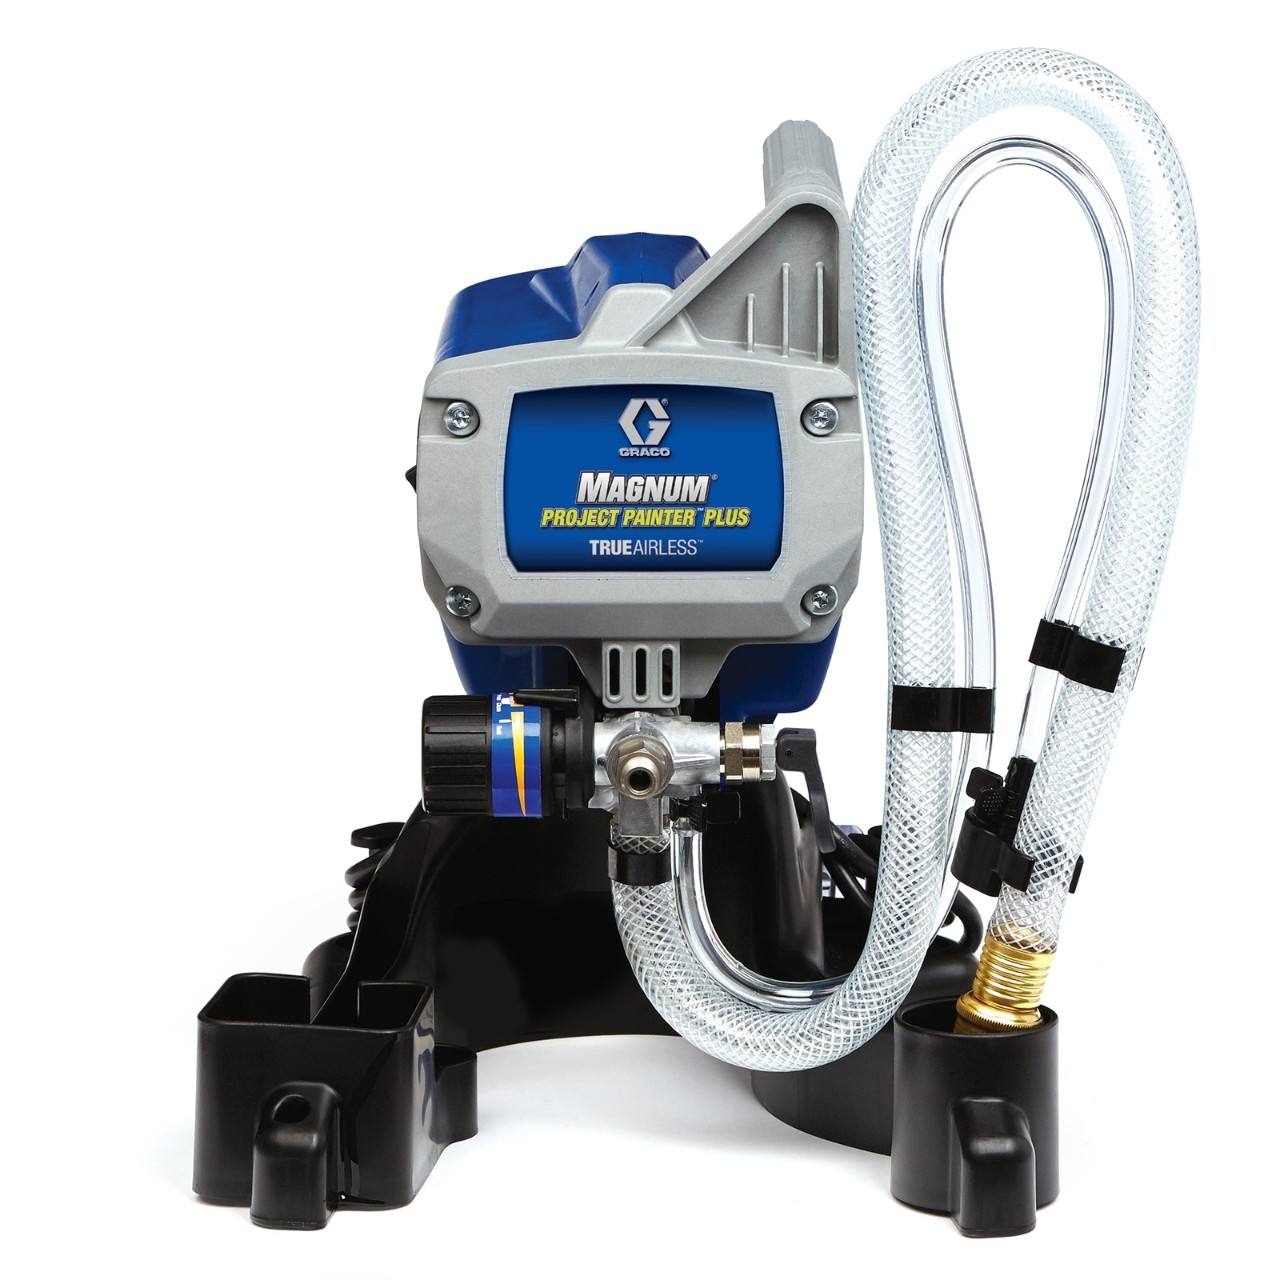 NEW GRACO 257025 MAGNUM PROJECT PAINTER PLUS AIRLESS 2.5 GALLON PAINT SPRAYER